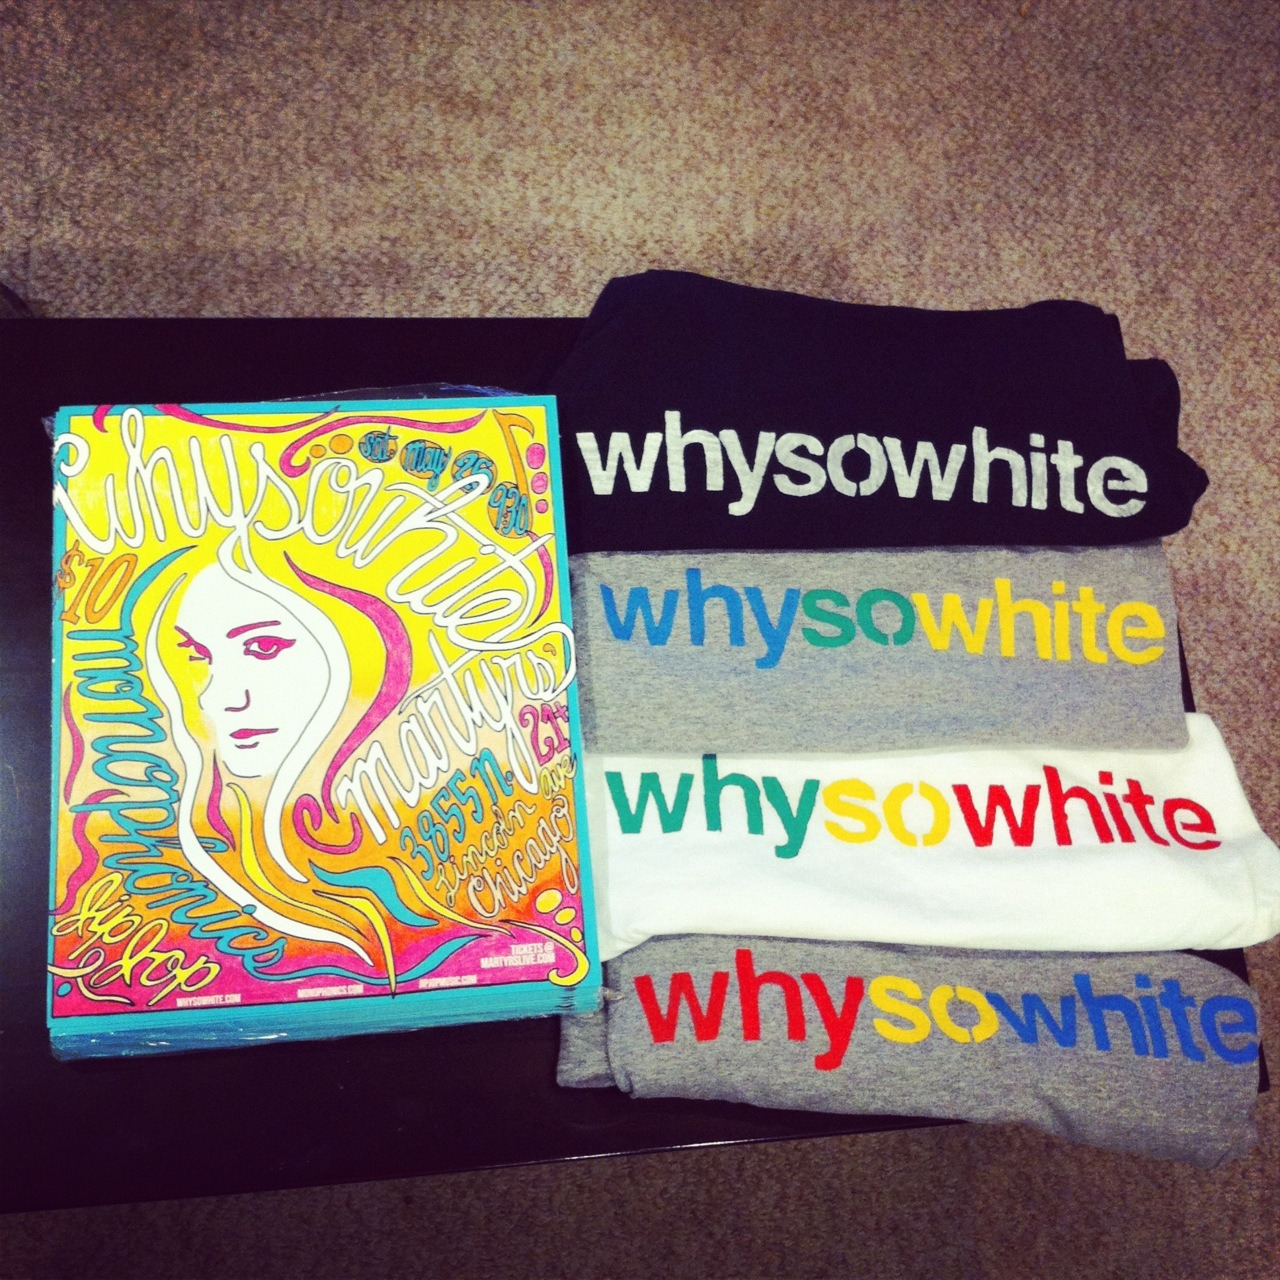 whysowhite:  That's right folks! We've got some exclusive hand painted T-Shirts and limited edition posters up for grabs! For a chance to win, forward your ticket confirmation e-mail for our upcoming show at Martyrs' on Saturday, May 26th to LovePeace@whysowhite.com and you are entered for a chance to win! 5 Winners: Hand Painted T-Shirt + Autographed Limited Edition Poster (11 x 17) 30 Winners: Autographed Limited Edition Poster (11 x 17) Forward ticket confirmation to LovePeace@whysowhite.com 1/100 - only 100 posters printed. designed by Erin Pederson (follow her @epmoneyy) 1/1 - each shirt is one of a kind and hand painted. much love to pwelbs mom! ———————————————————————————— SHOW INFORMATION:  whysowhite with Monphonics + Jip Jop Marytrs' – 3855 N Lincoln Ave. Chicago, IL  (Map It!) Saturday, May 26th | Doors: 8:00PM | Show: 9:30PM $10 || 21+ Get Tickets at MartyrsLive.com Facebook Event // CrowdNoize Page Flyer Design by Erin Pederson (@epmoneyy) ———————————————————————————— we love you. thank you. whysowhite.